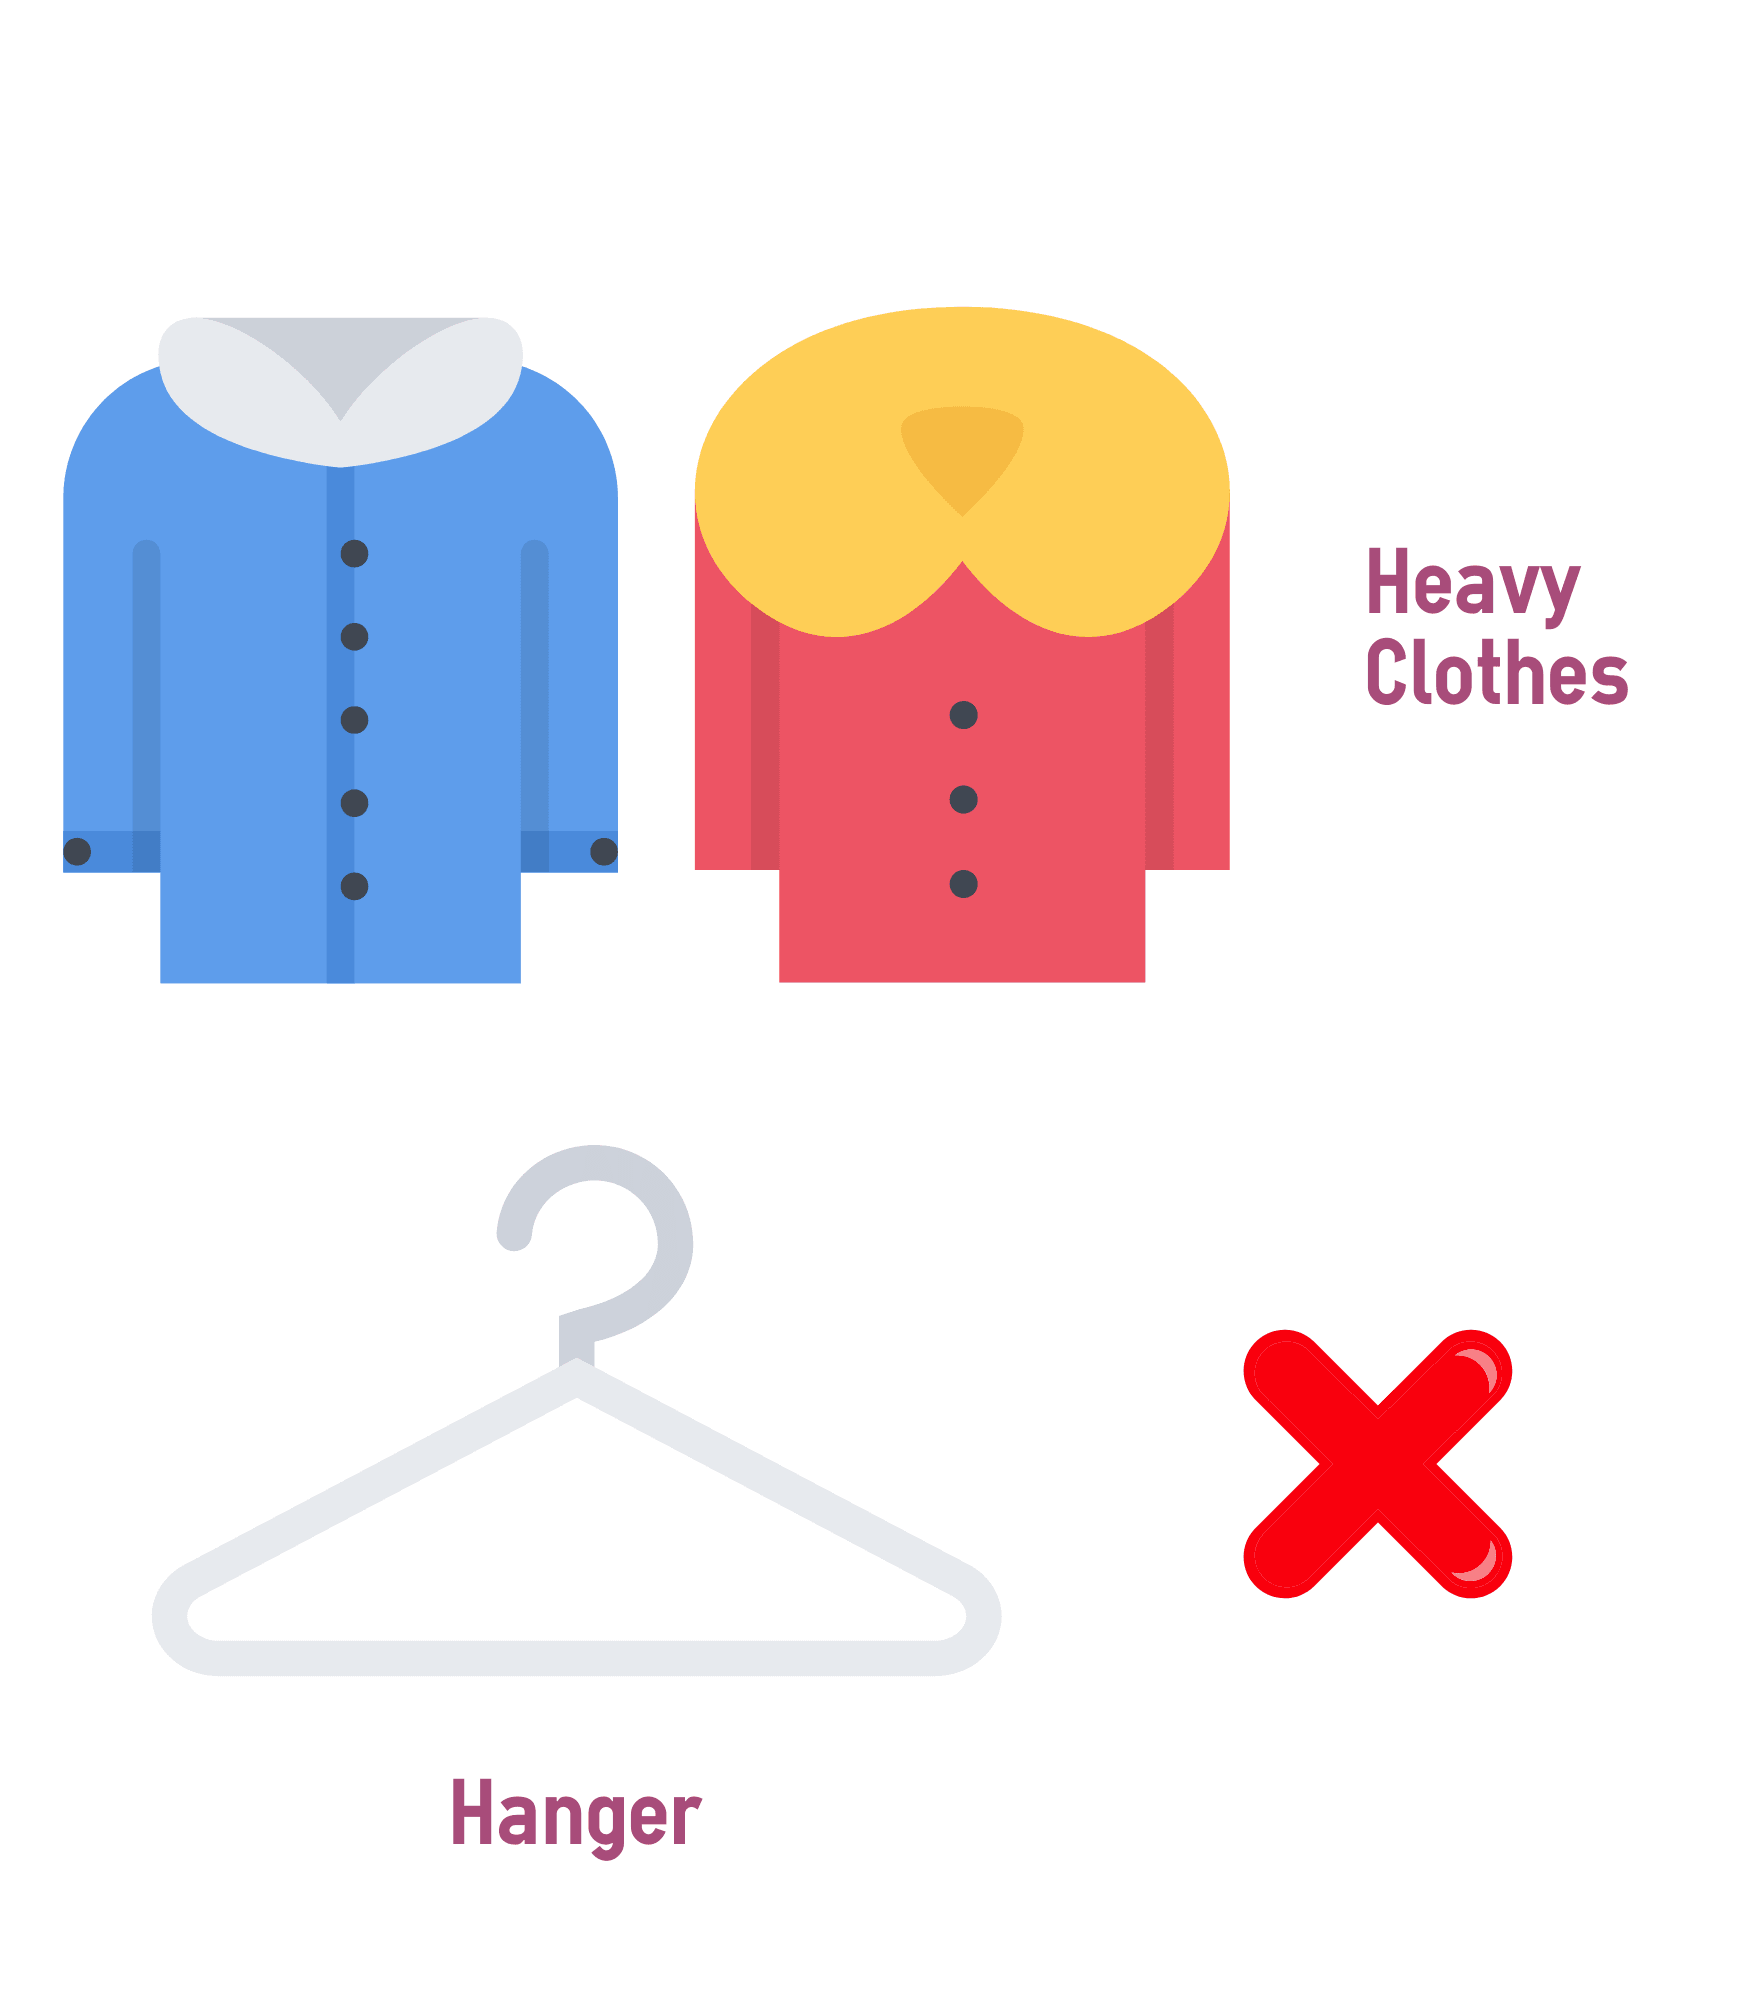 Important points to note -heavy clothes